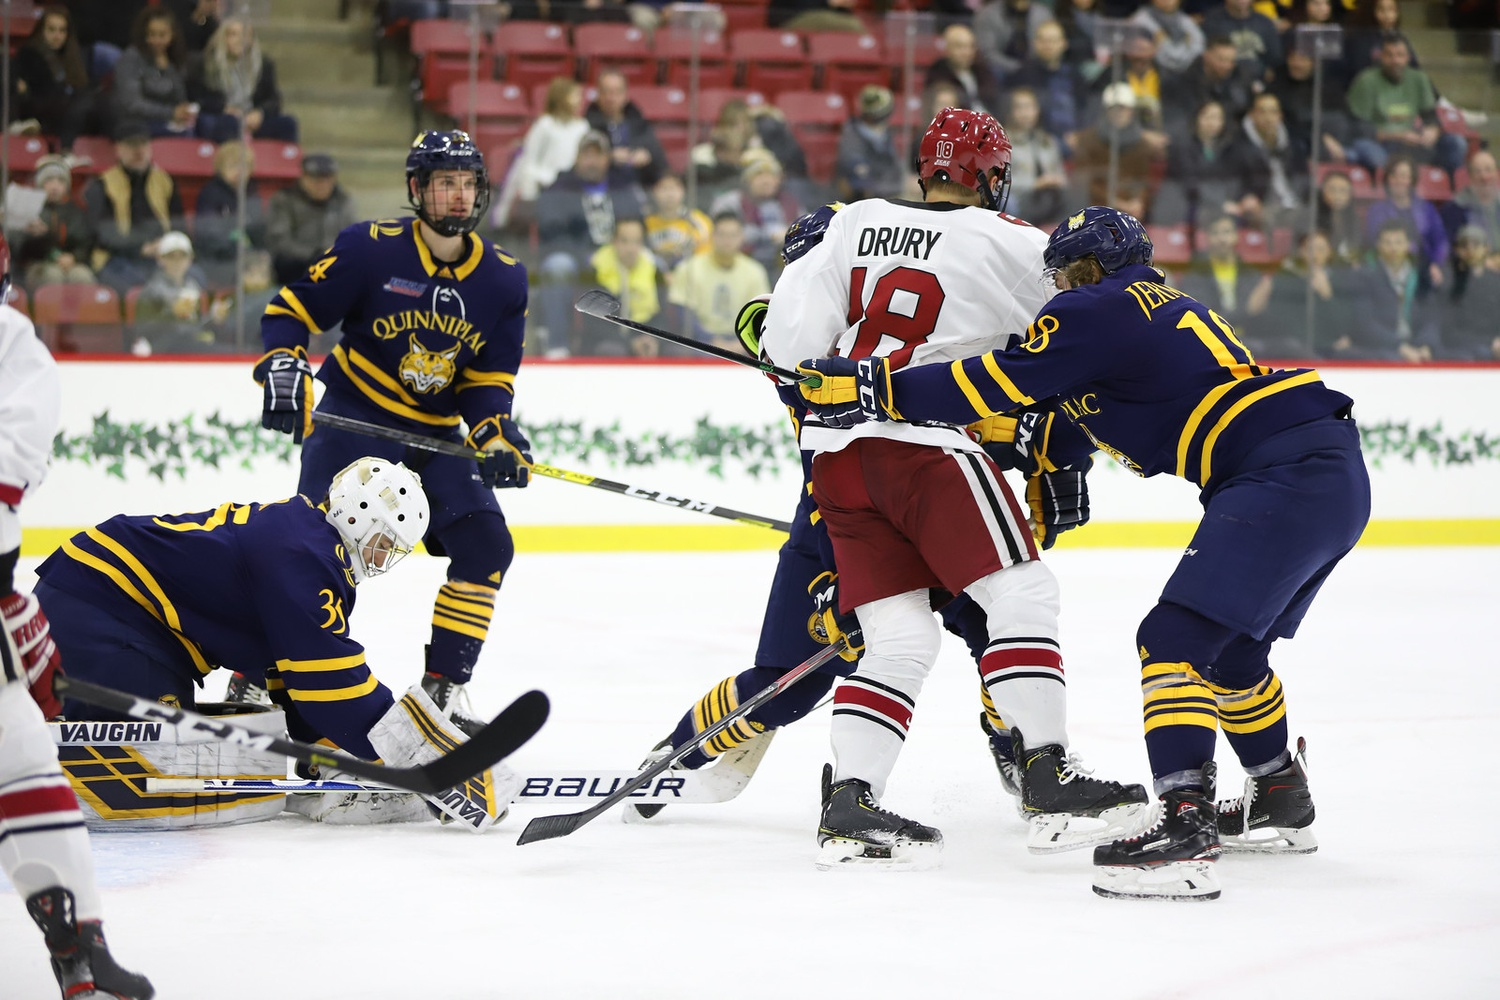 Harvard was without its top-line center on Friday at Quinnipiac. Sophomore Jack Drury was still traveling back from the Czech Republic, where he represented the United States in the World Junior Championship.